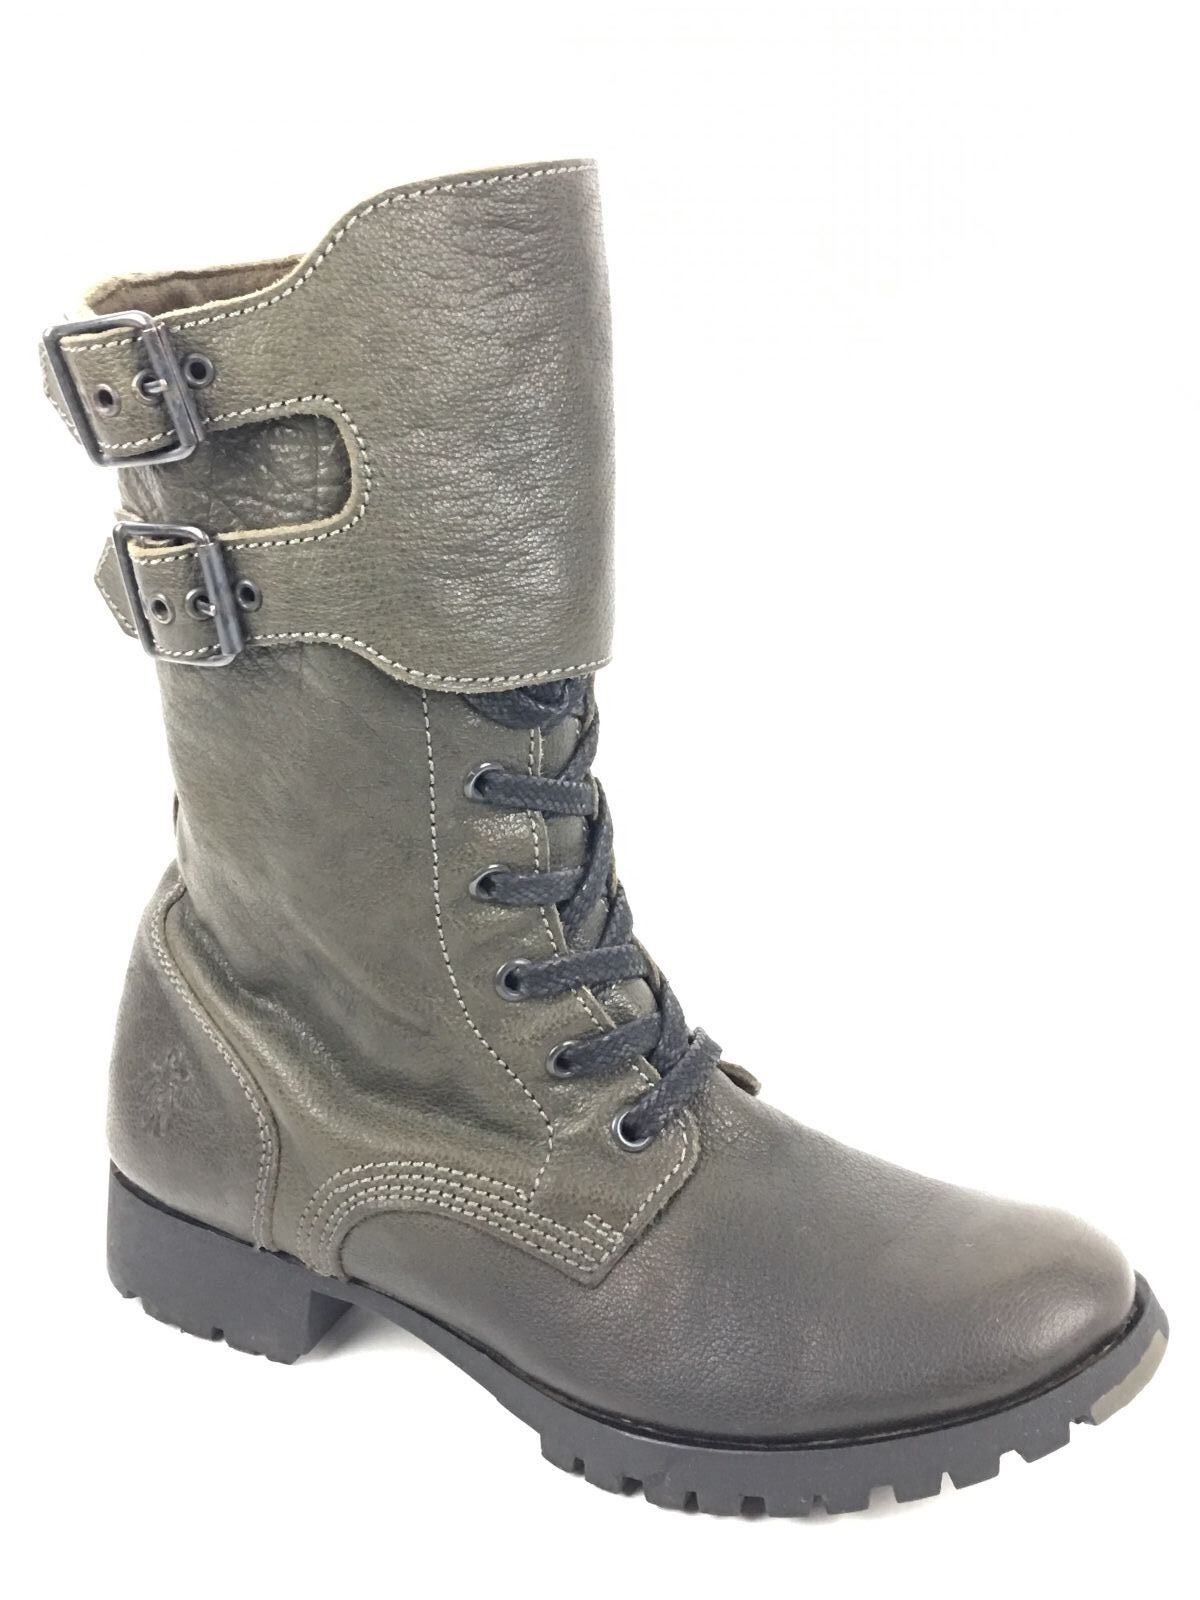 Fly London Combat Stivali Lace up  Buckle and Side Zip Dark Sage EU.36 US 5.5-6